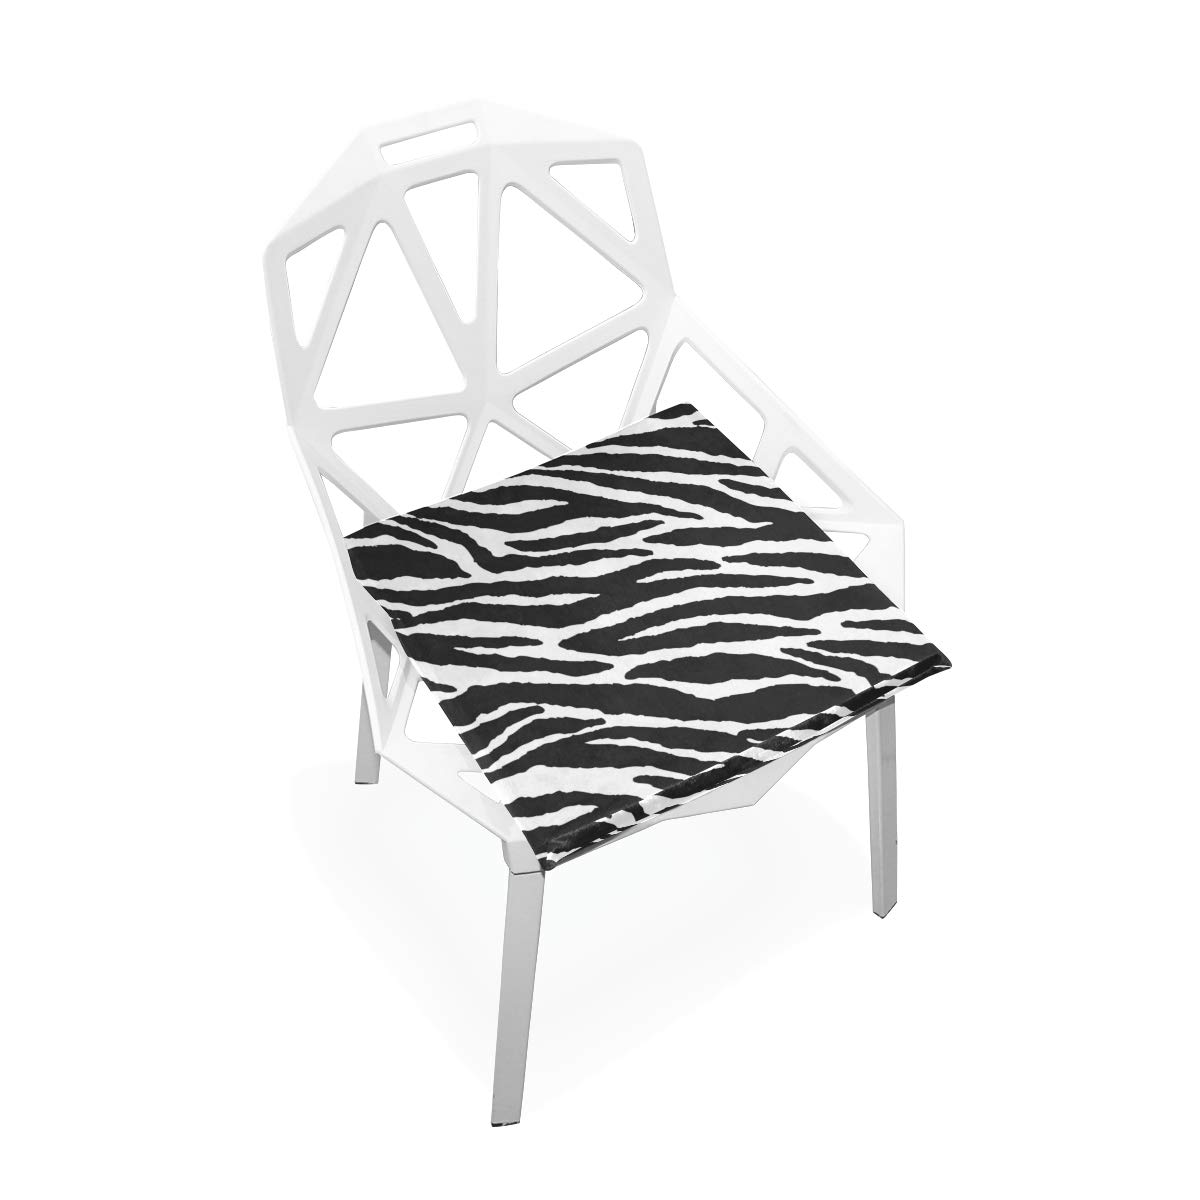 TSWEETHOME Comfort Memory Foam Square Chair Cushion Seat Cushion with Animal Skins Zebra Print Chair Pads for Floors Dining Office Chairs